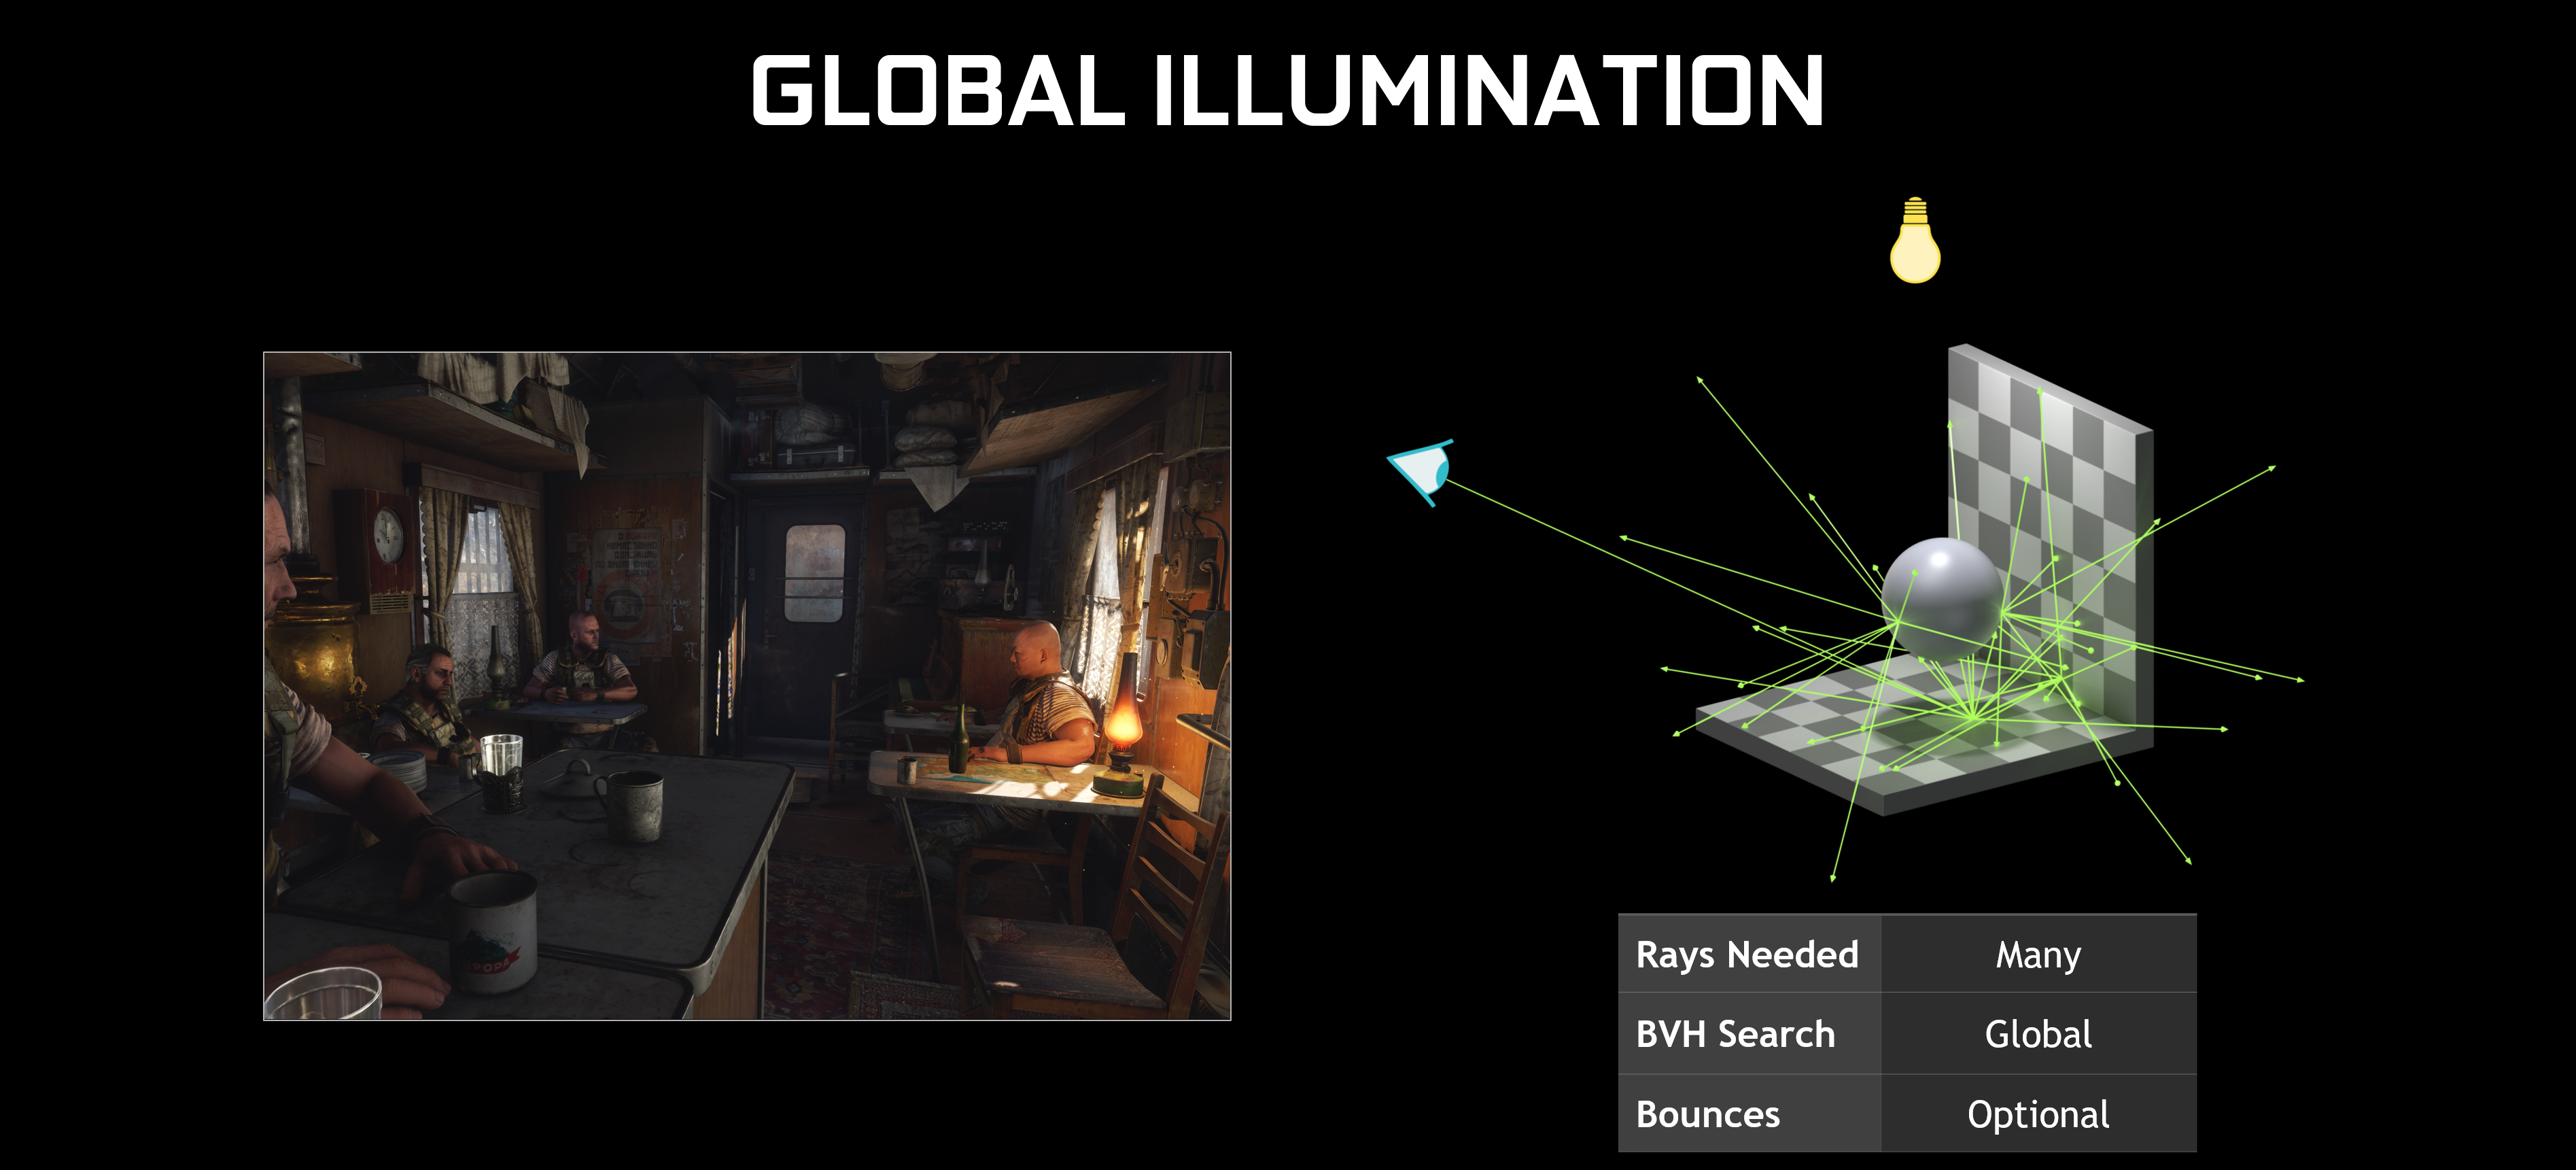 https://www.nvidia.com/content/dam/en-zz/Solutions/geforce/news/geforce-dxr-ray-tracing/global-illumination-dxr-explainer.png